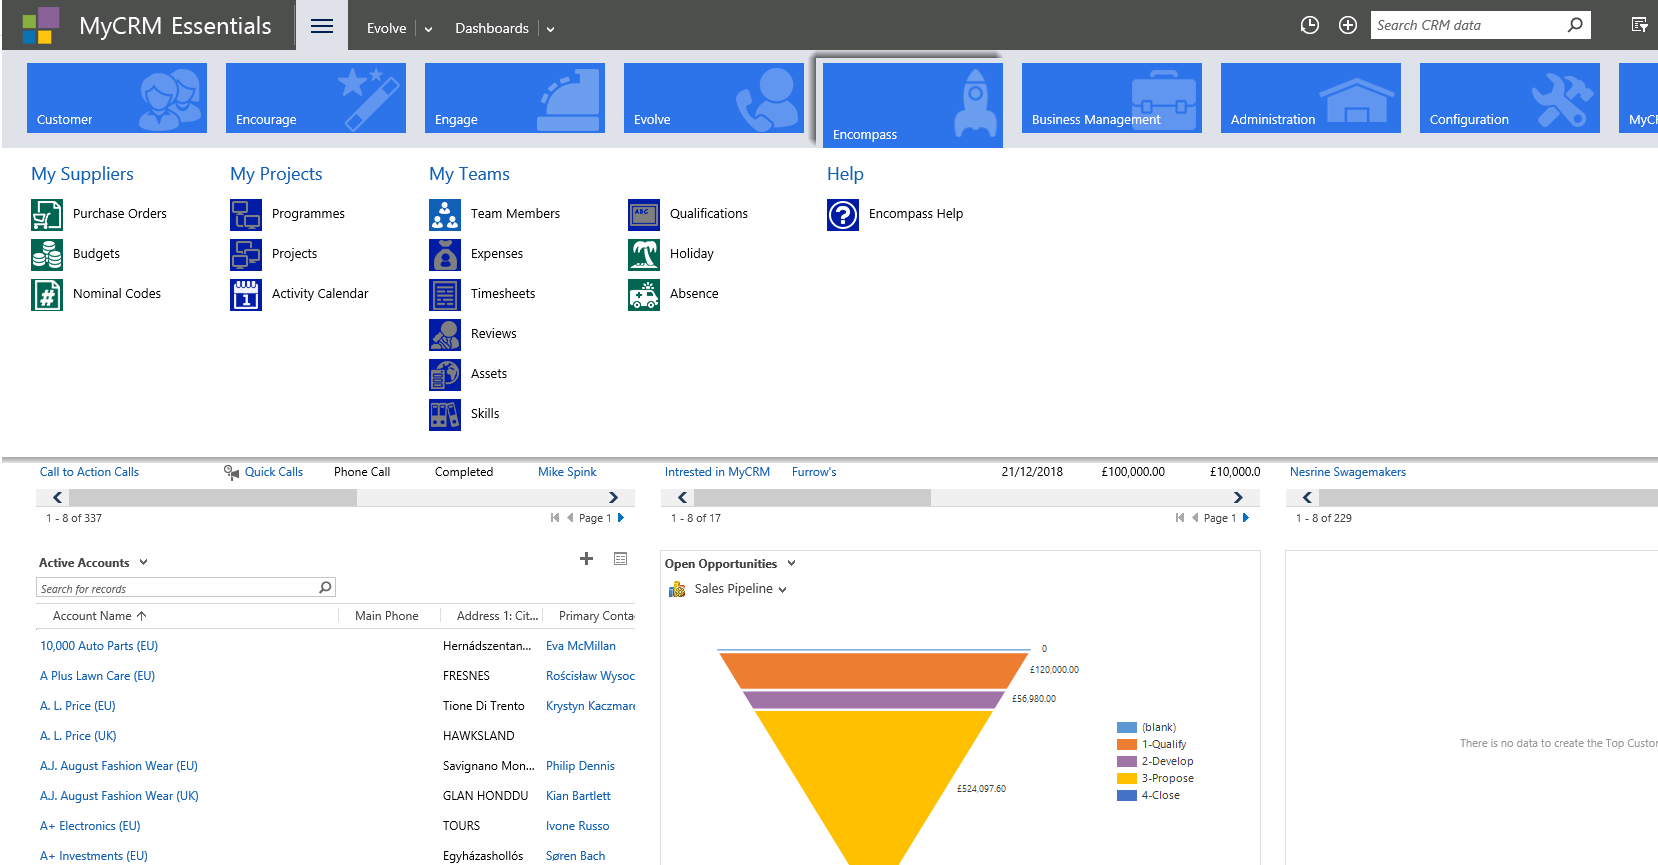 Image of CRM screenshot showing Encompass